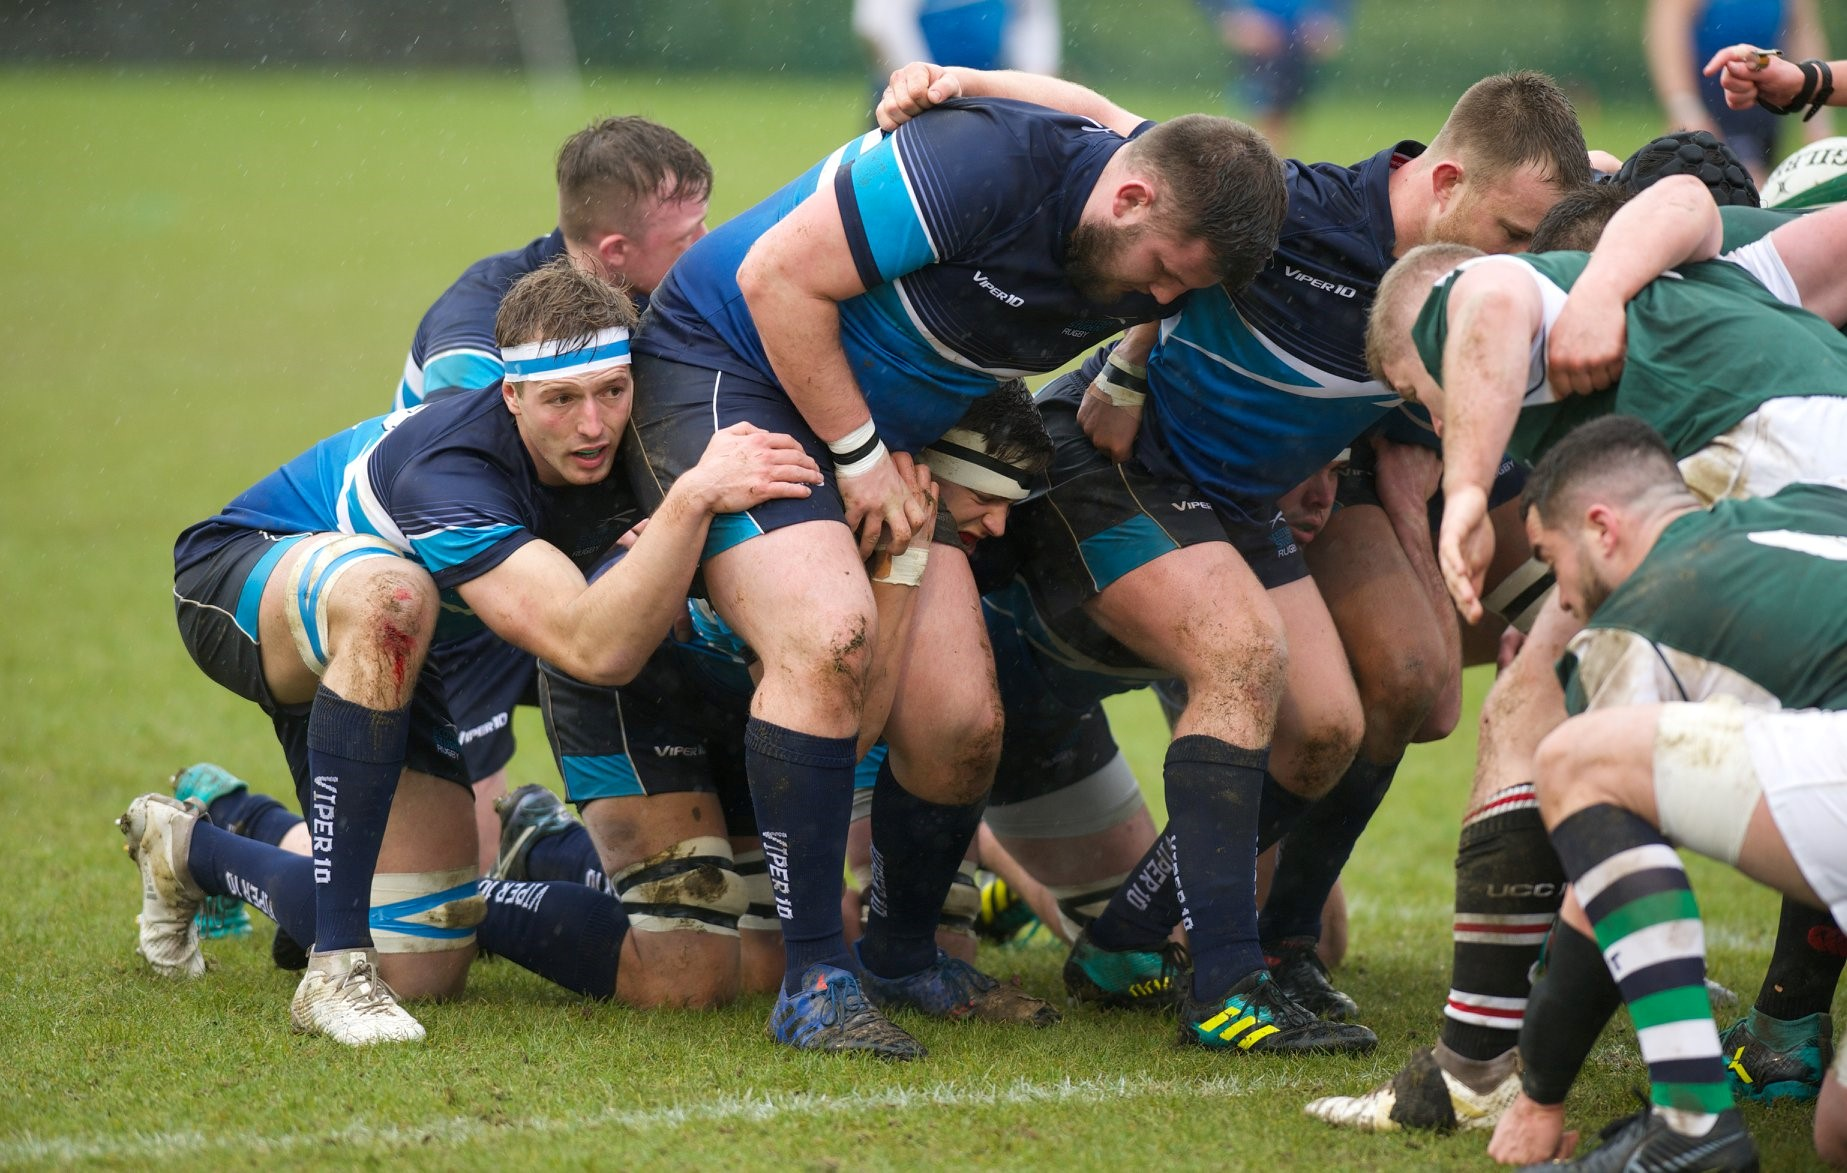 Rugby player turns massage